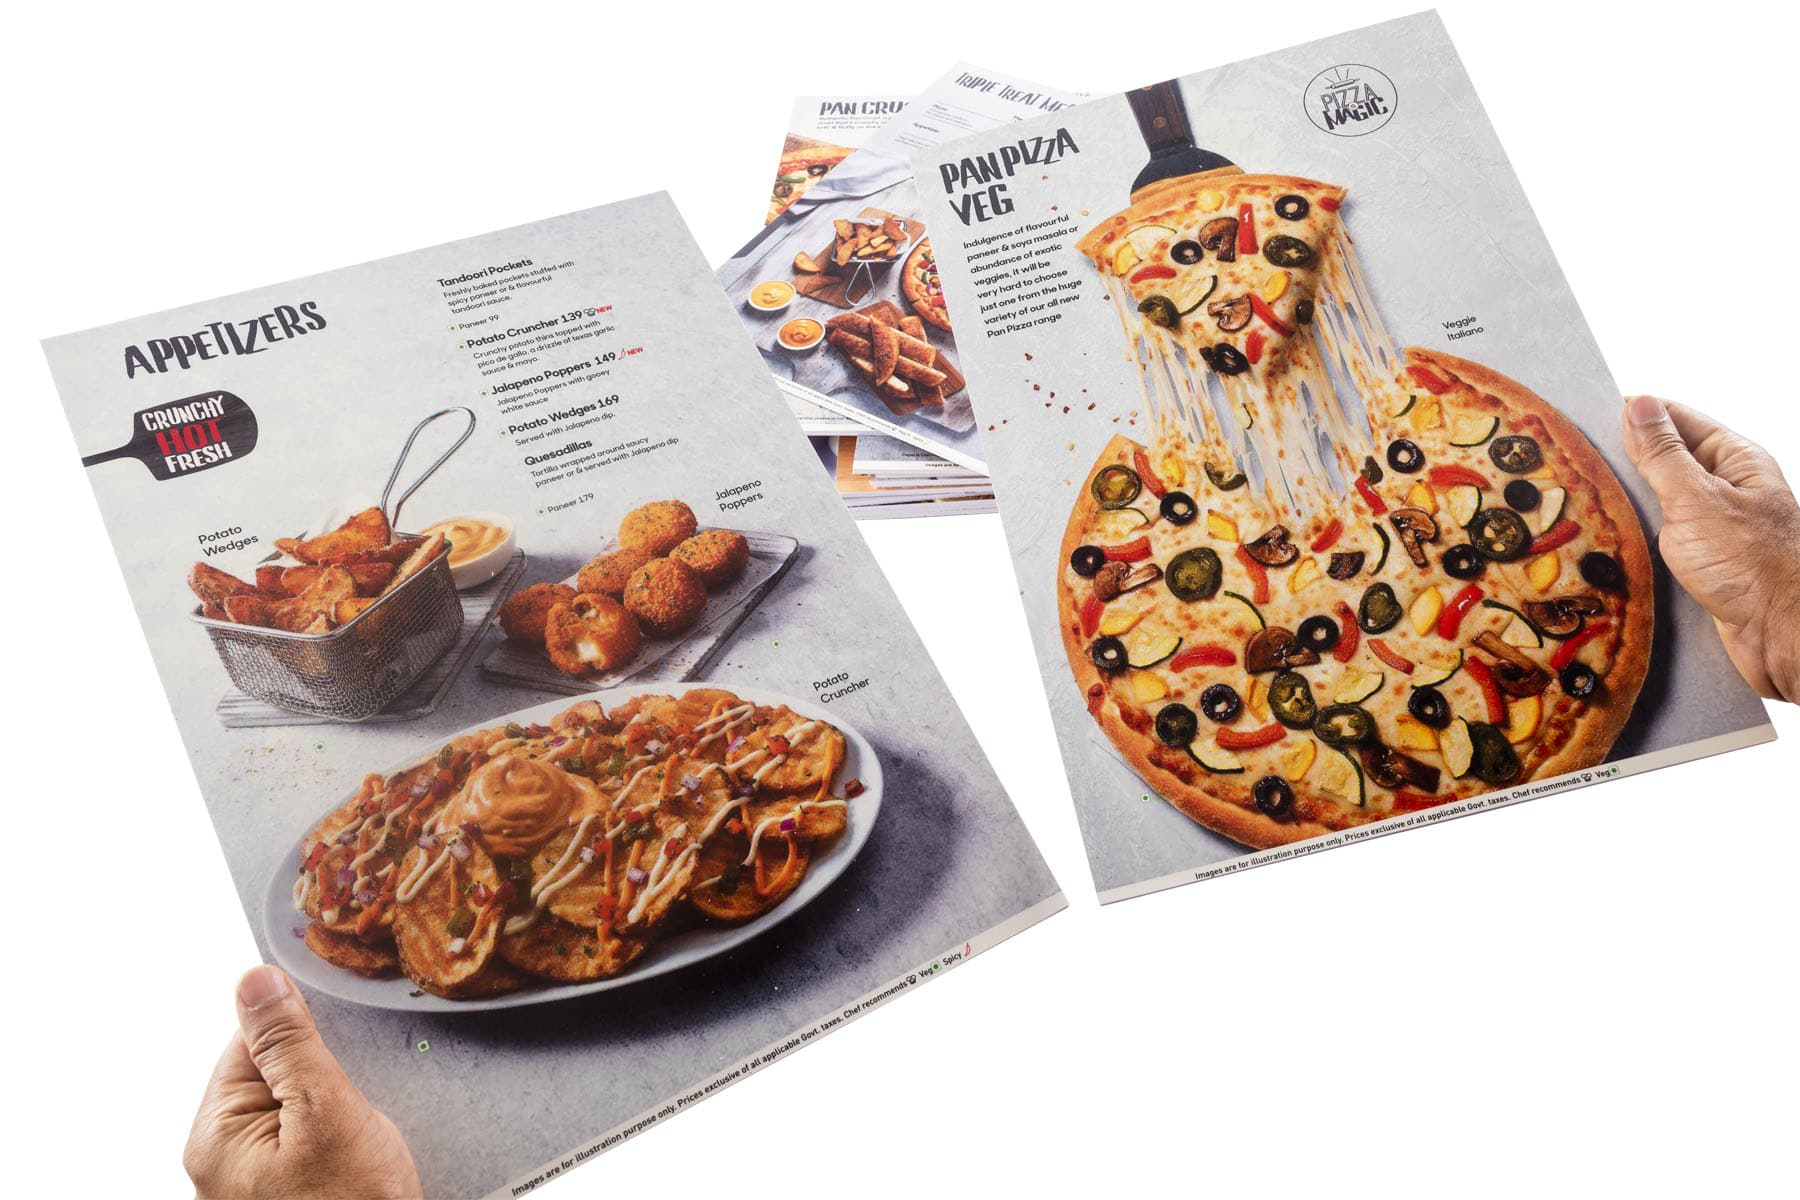 rigid menus showing food shots of pizzas printed on a thick sunboard sheet which do not bend and remain stiff